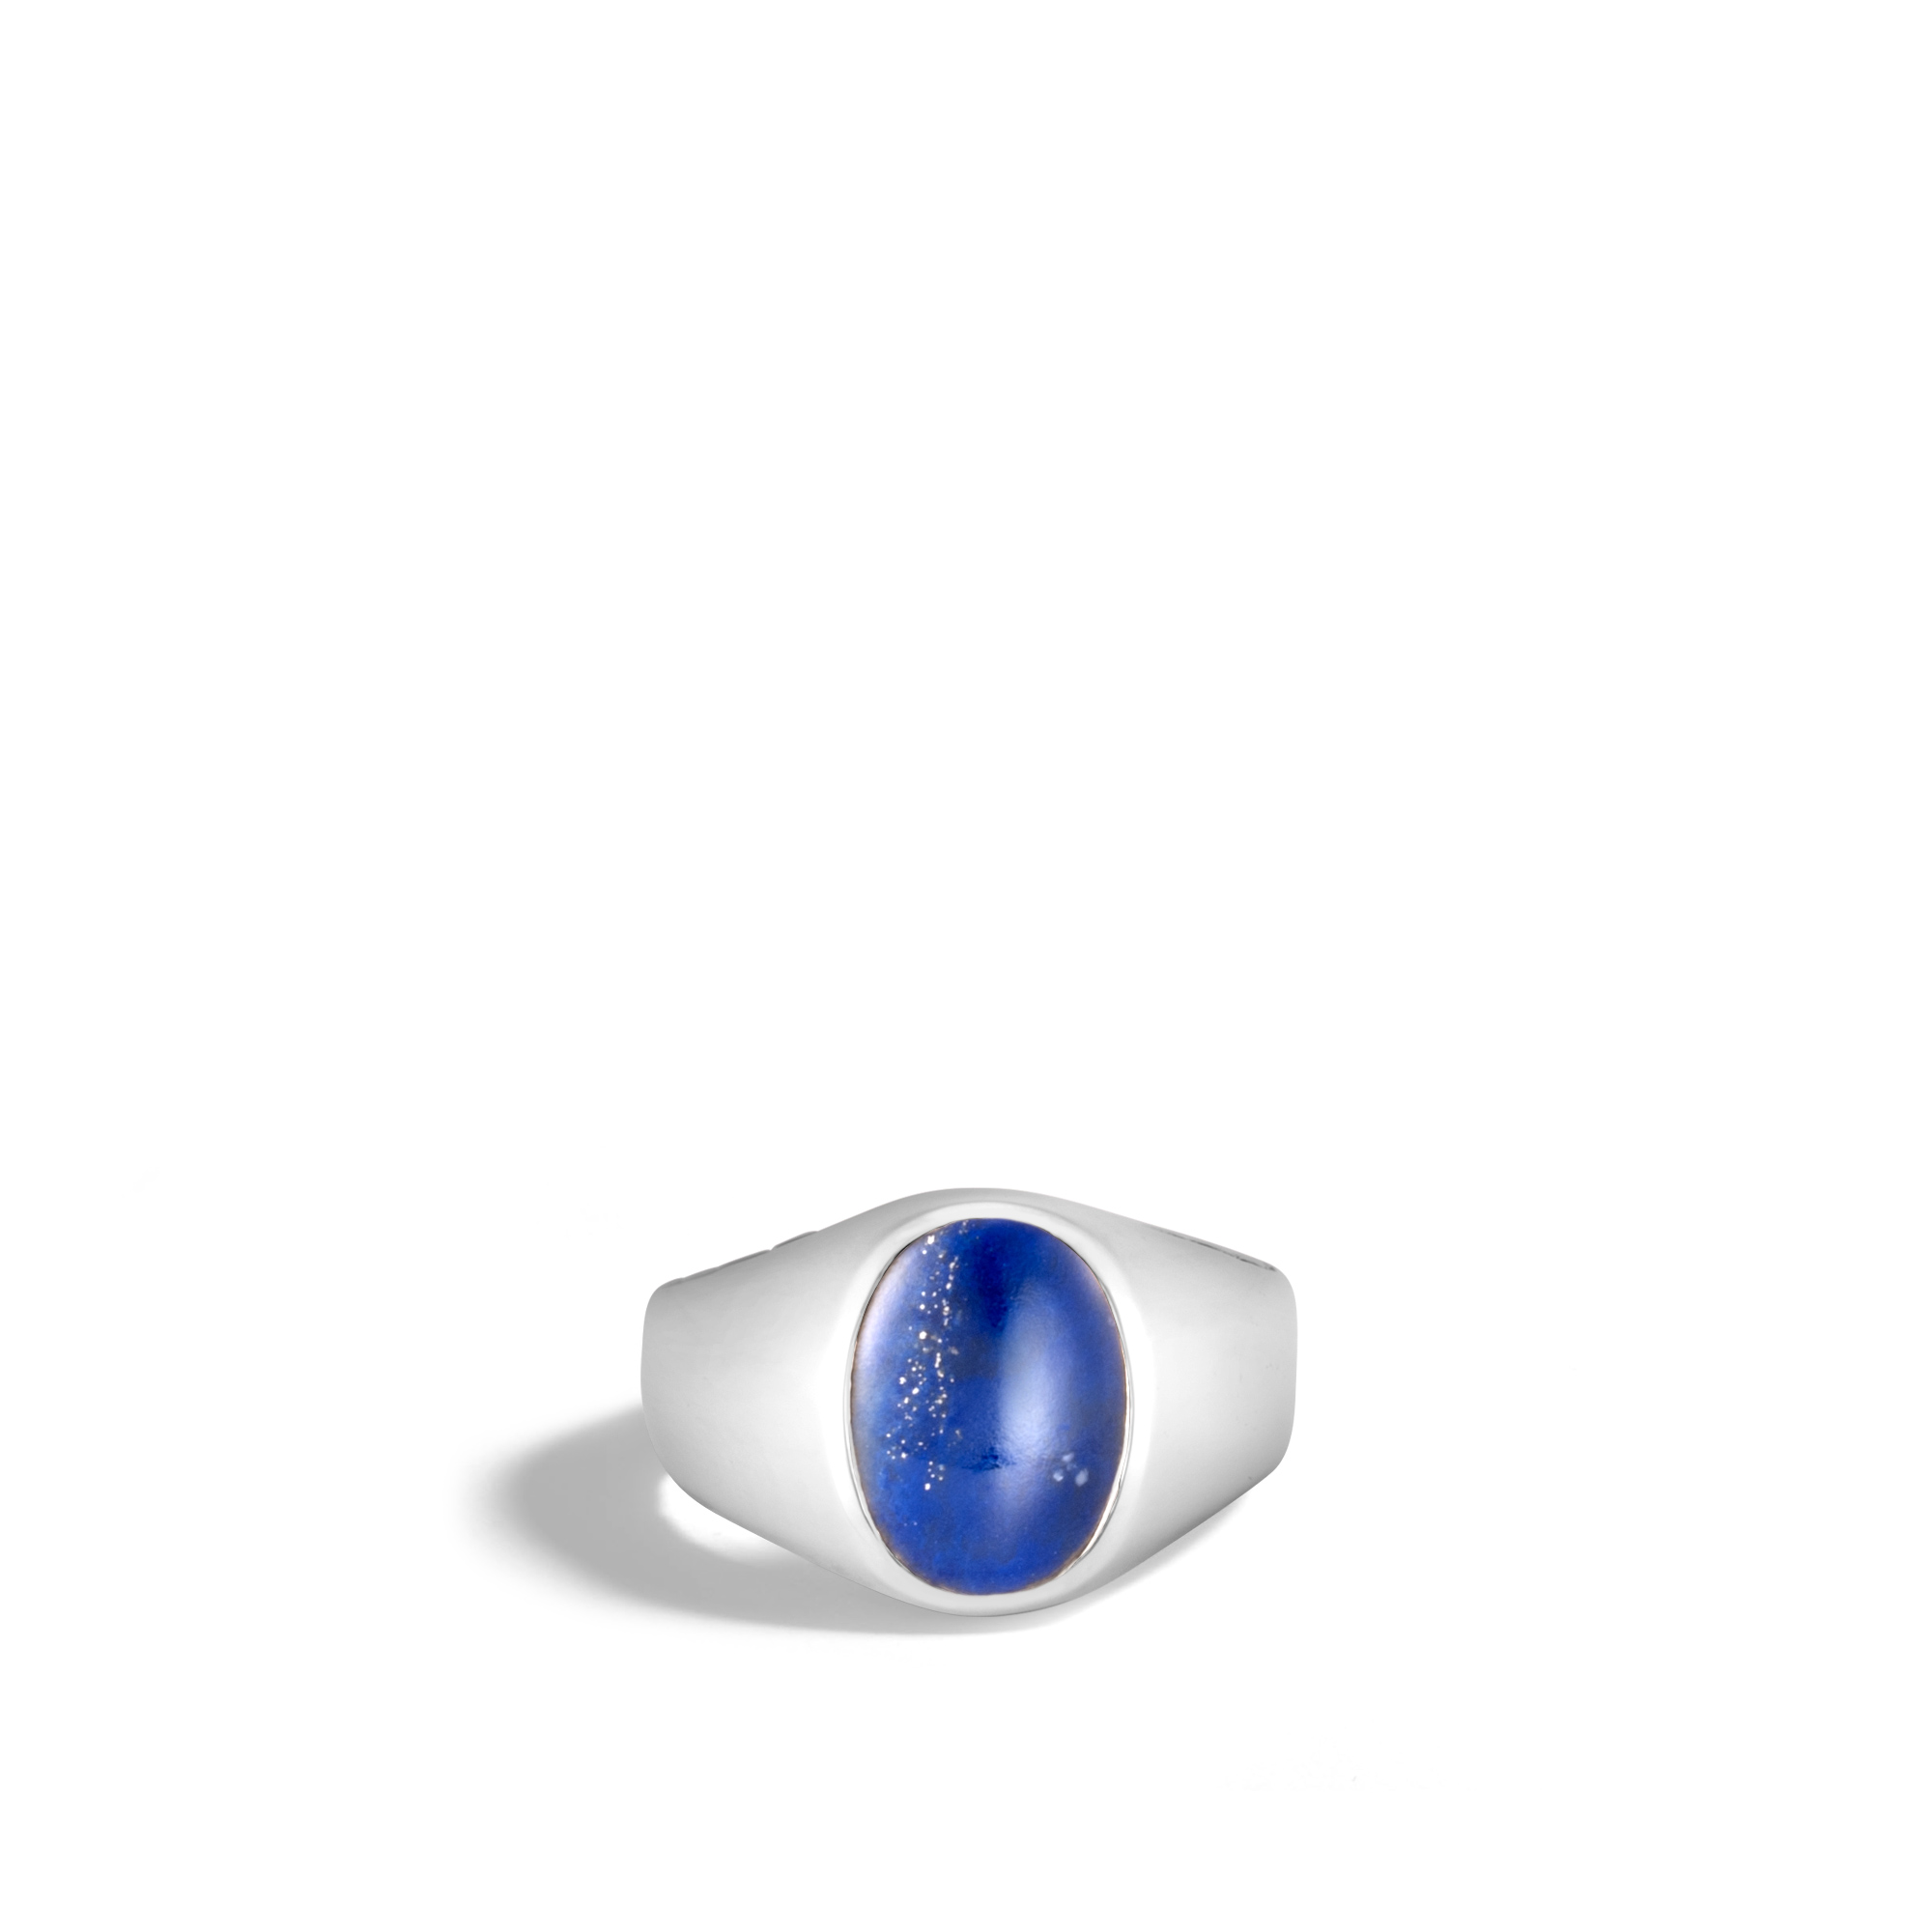 Classic Chain Oval Signet Ring in Silver with Gemstone, Lapis Lazuli, large